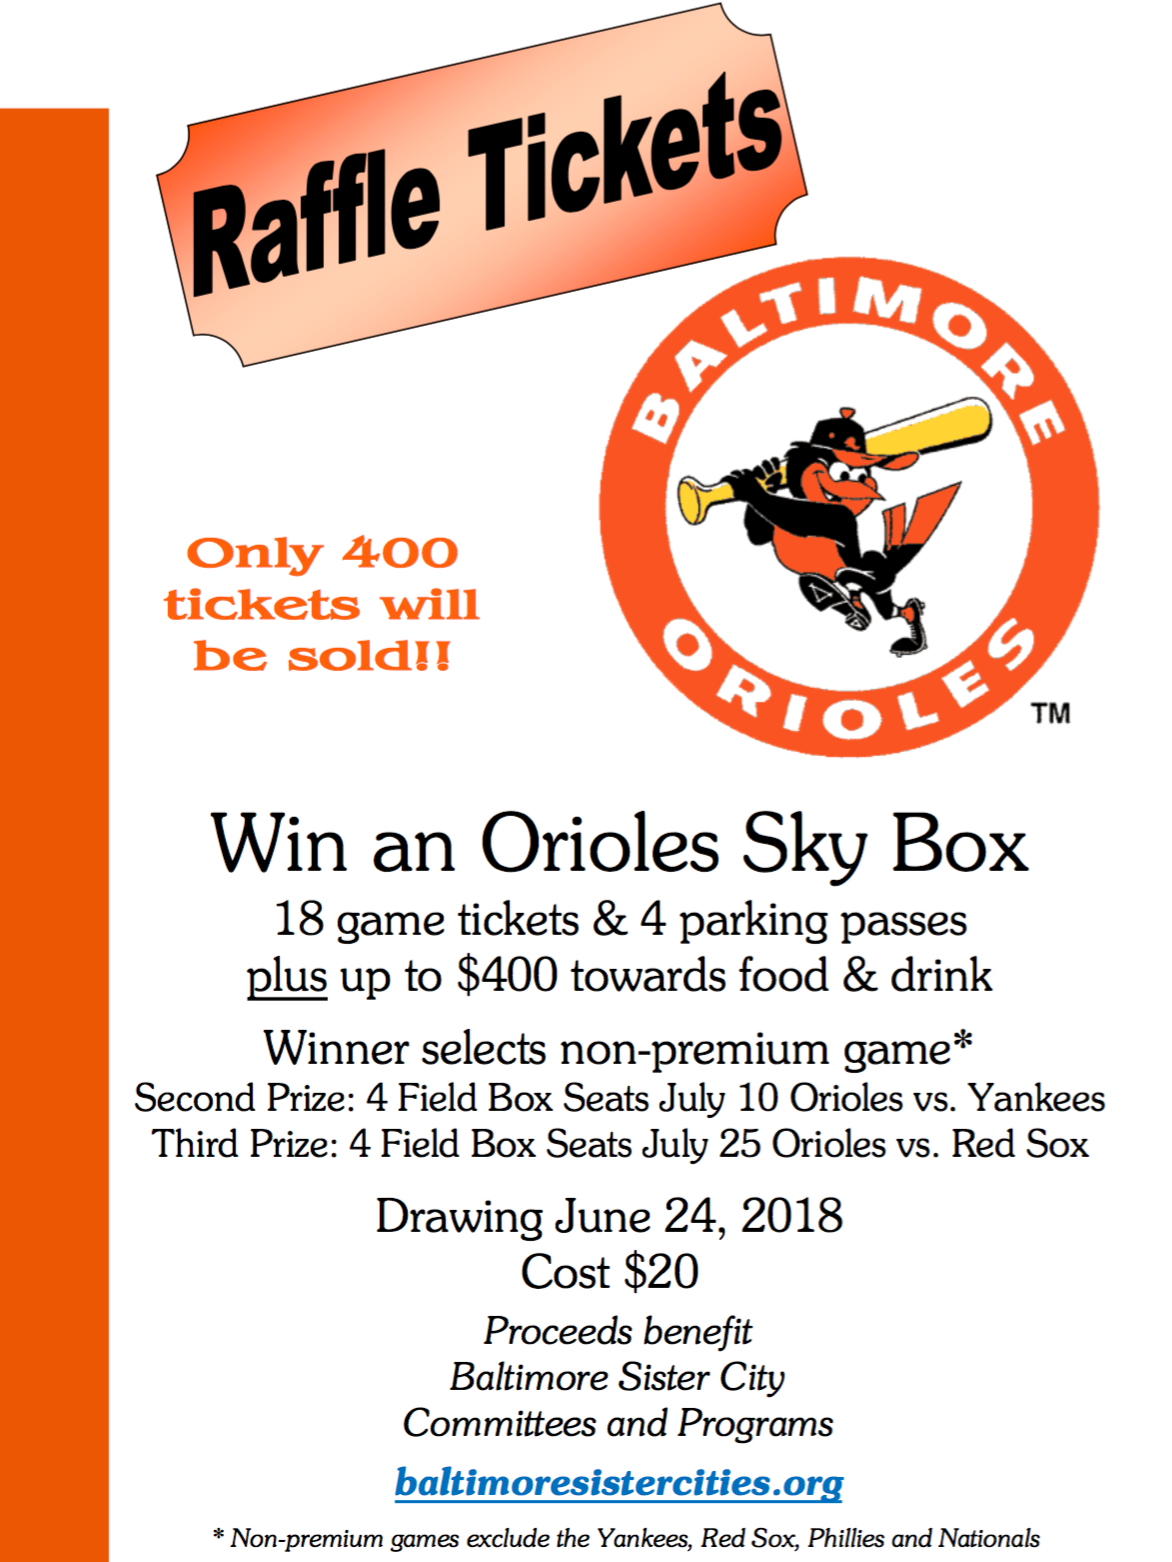 picture regarding Orioles Printable Schedule referred to as Sister Towns Raffle: Get an Orioles Sky Box! - Baltimore